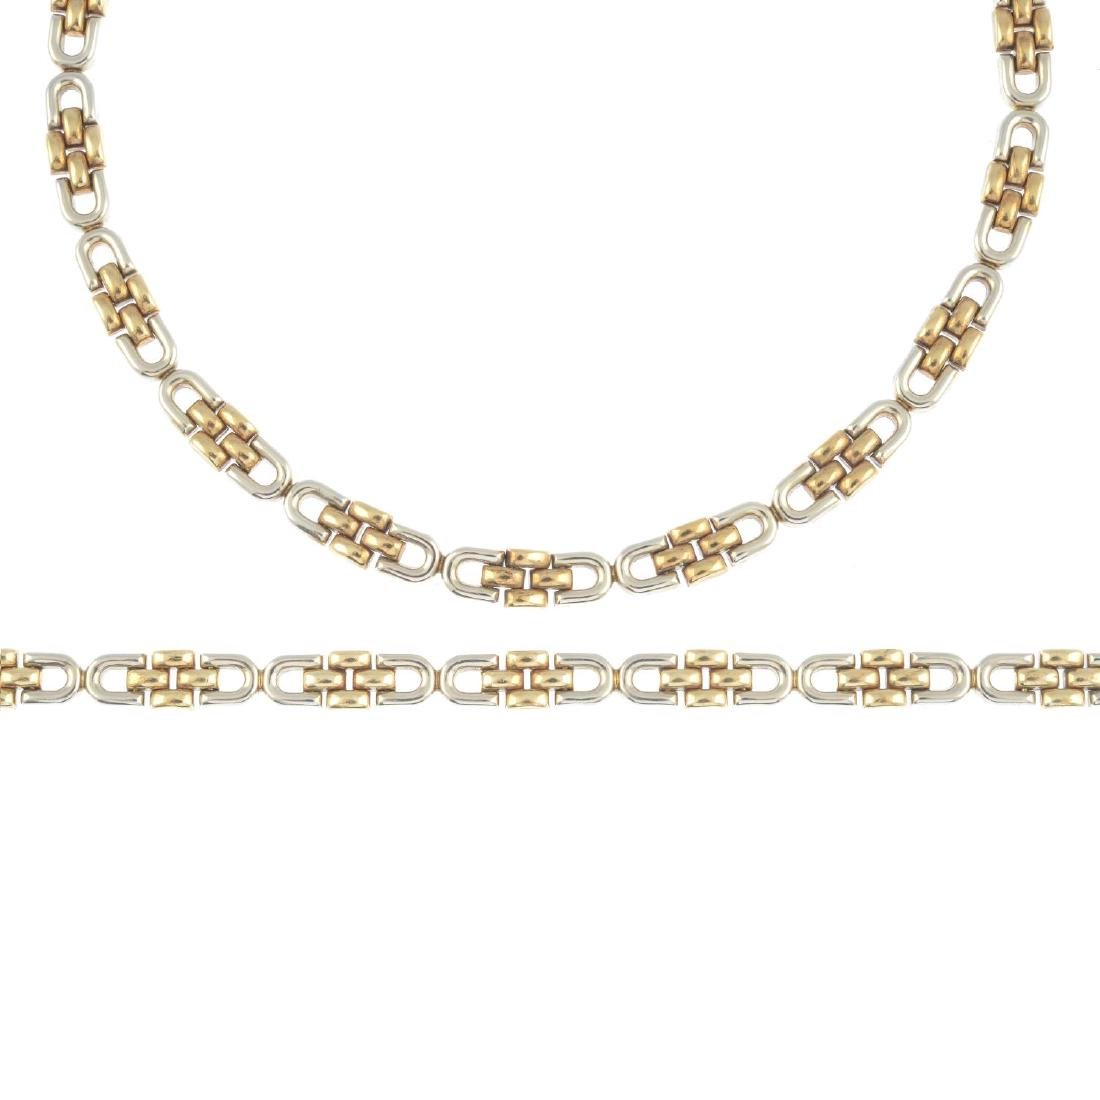 A 9ct gold necklace and bracelet. To include a